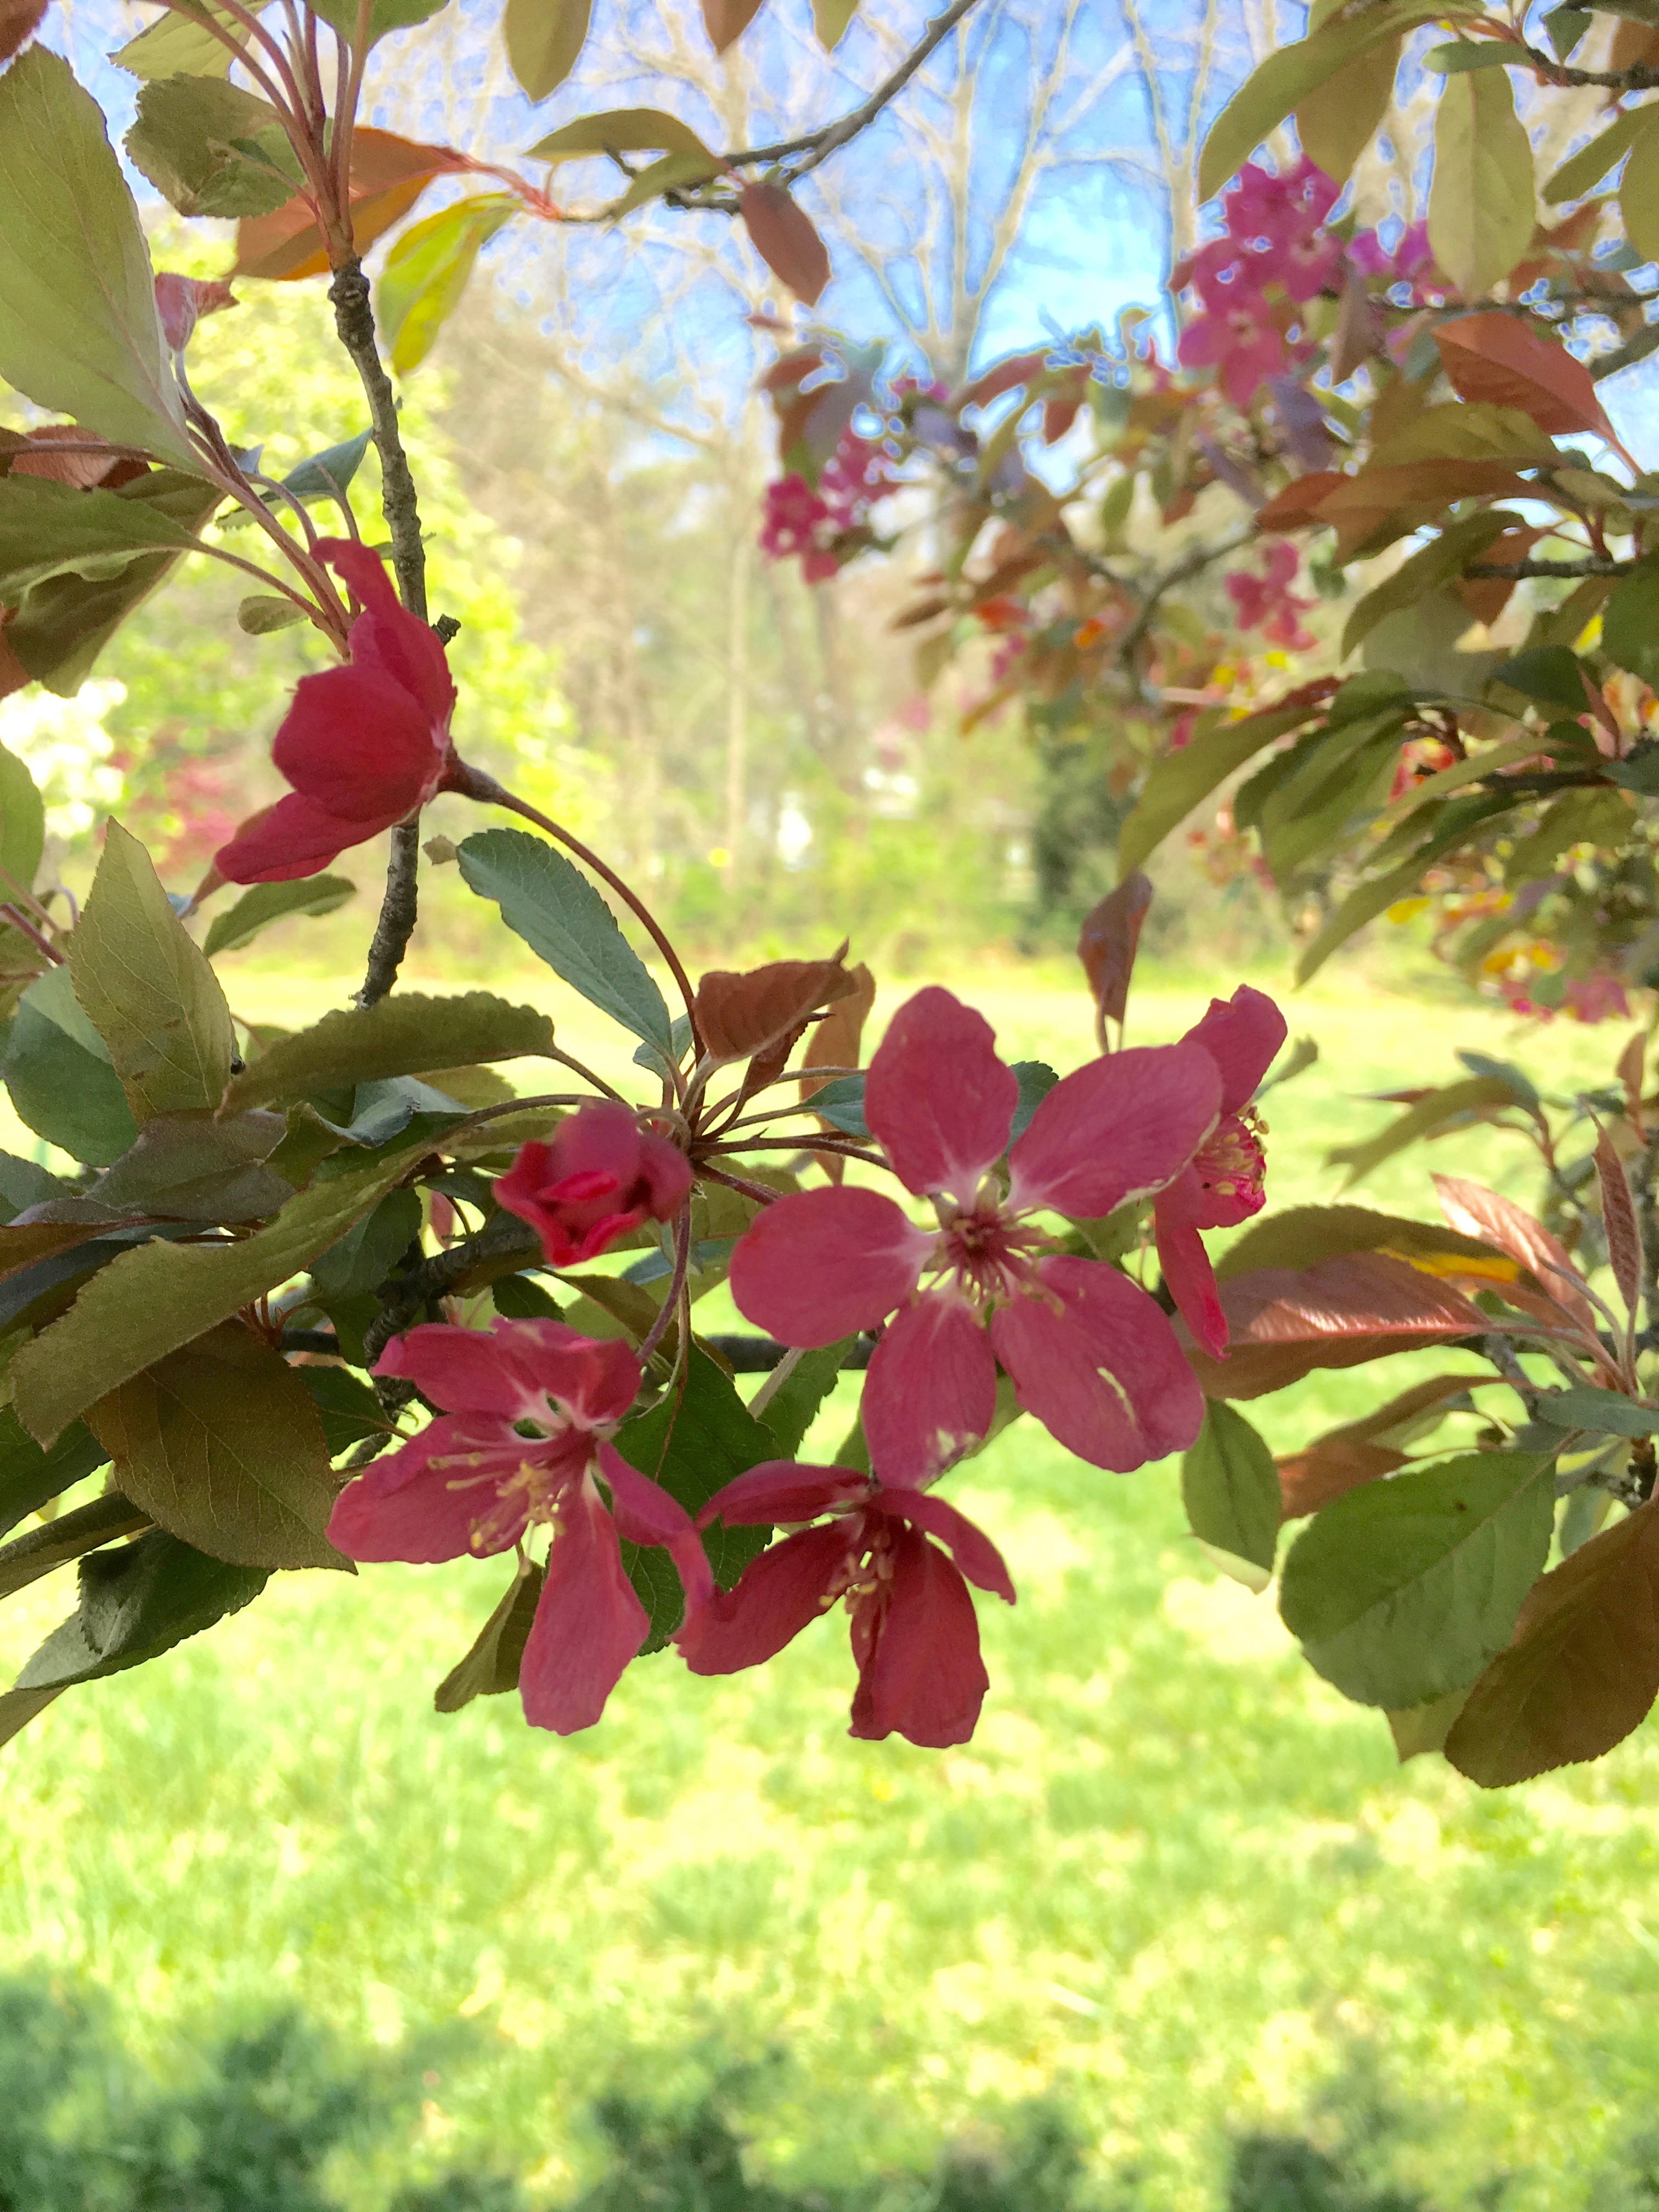 Flowering Red Crabapple blossoms